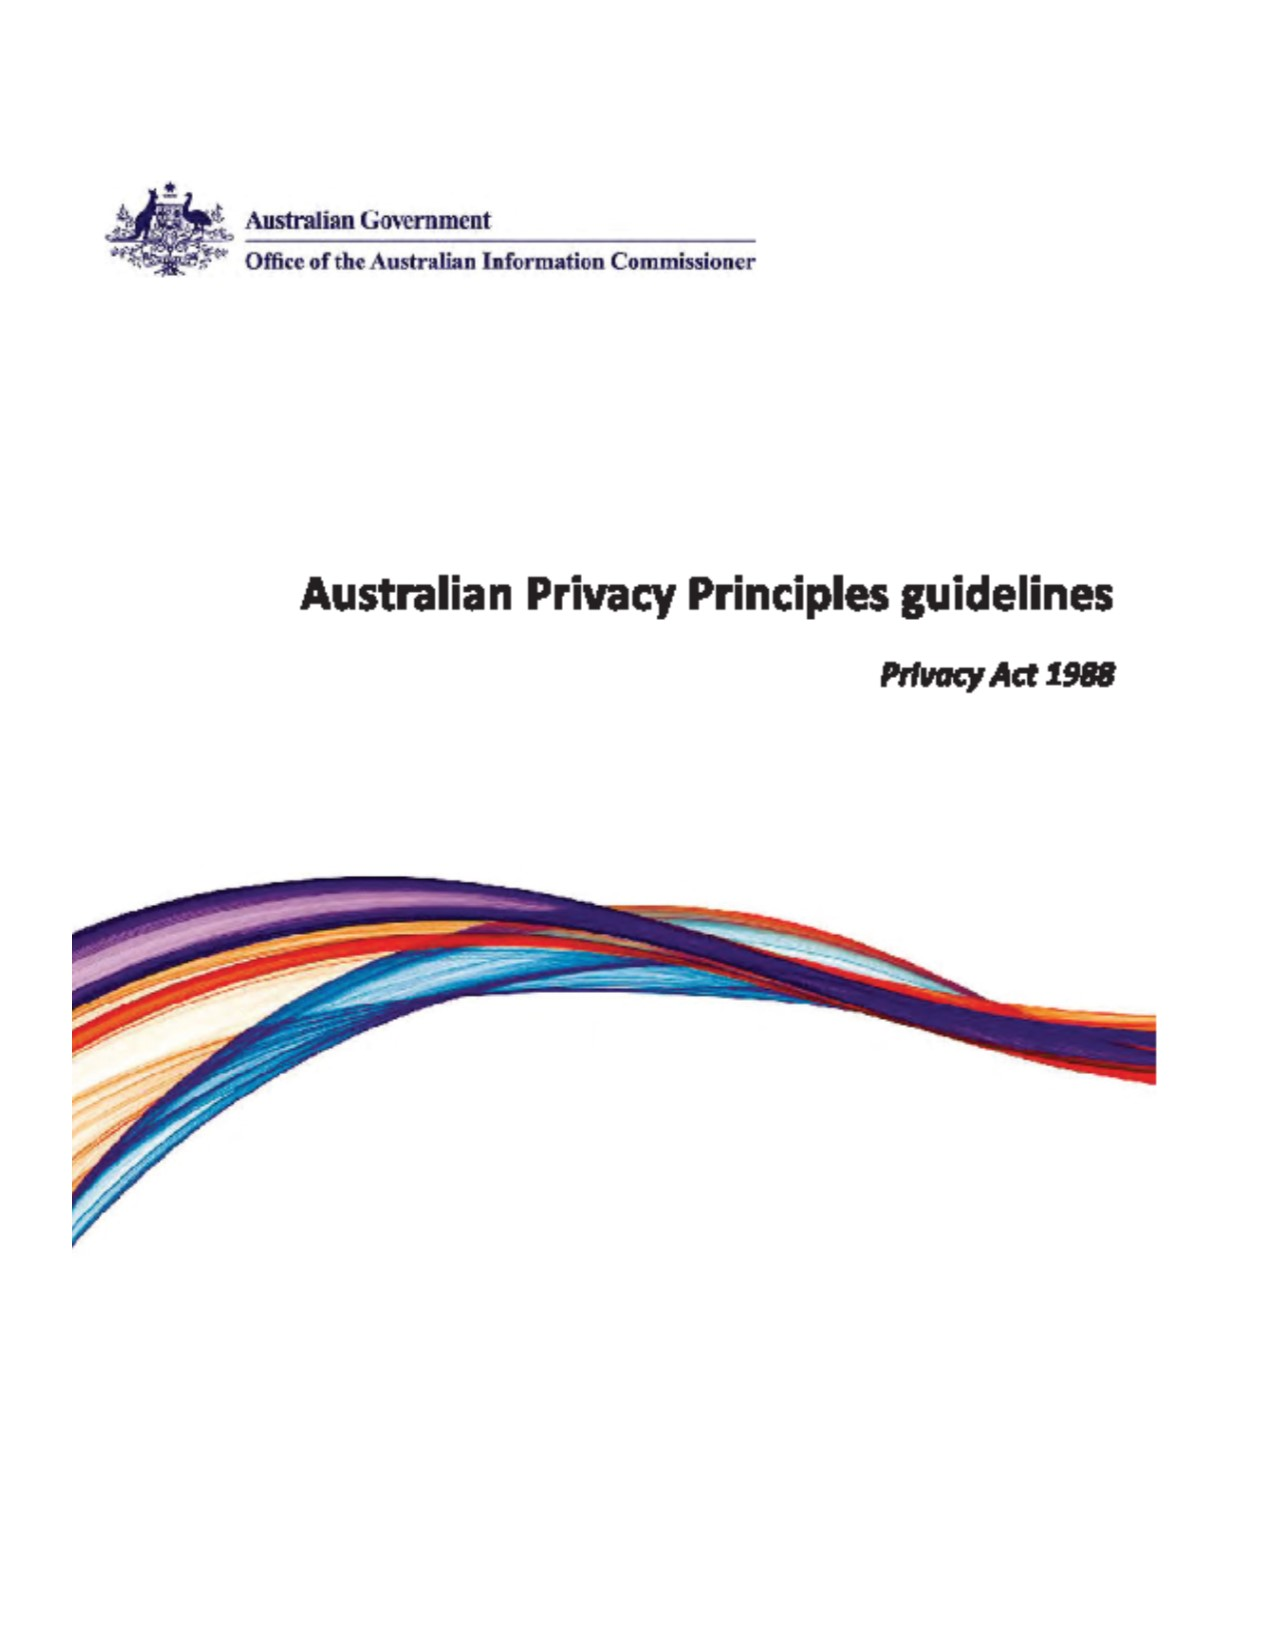 OAIC Australian Privacy Principles guidelines links